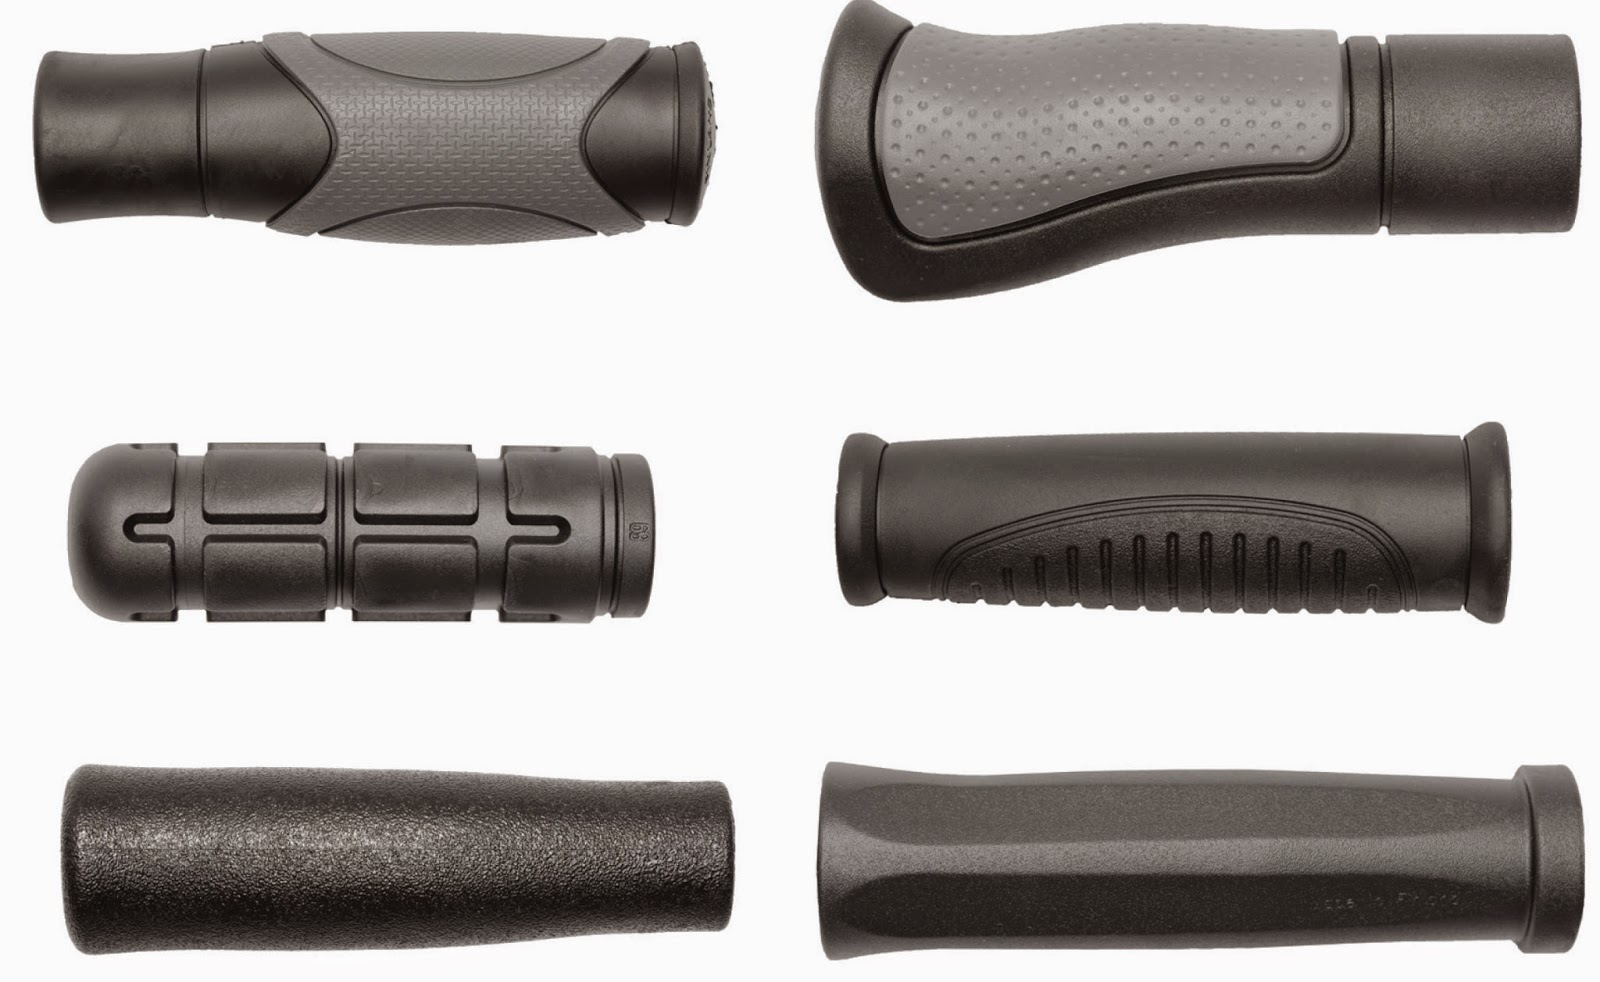 Sinclair & Rush: Getting a handle on our grips for the right grip ...